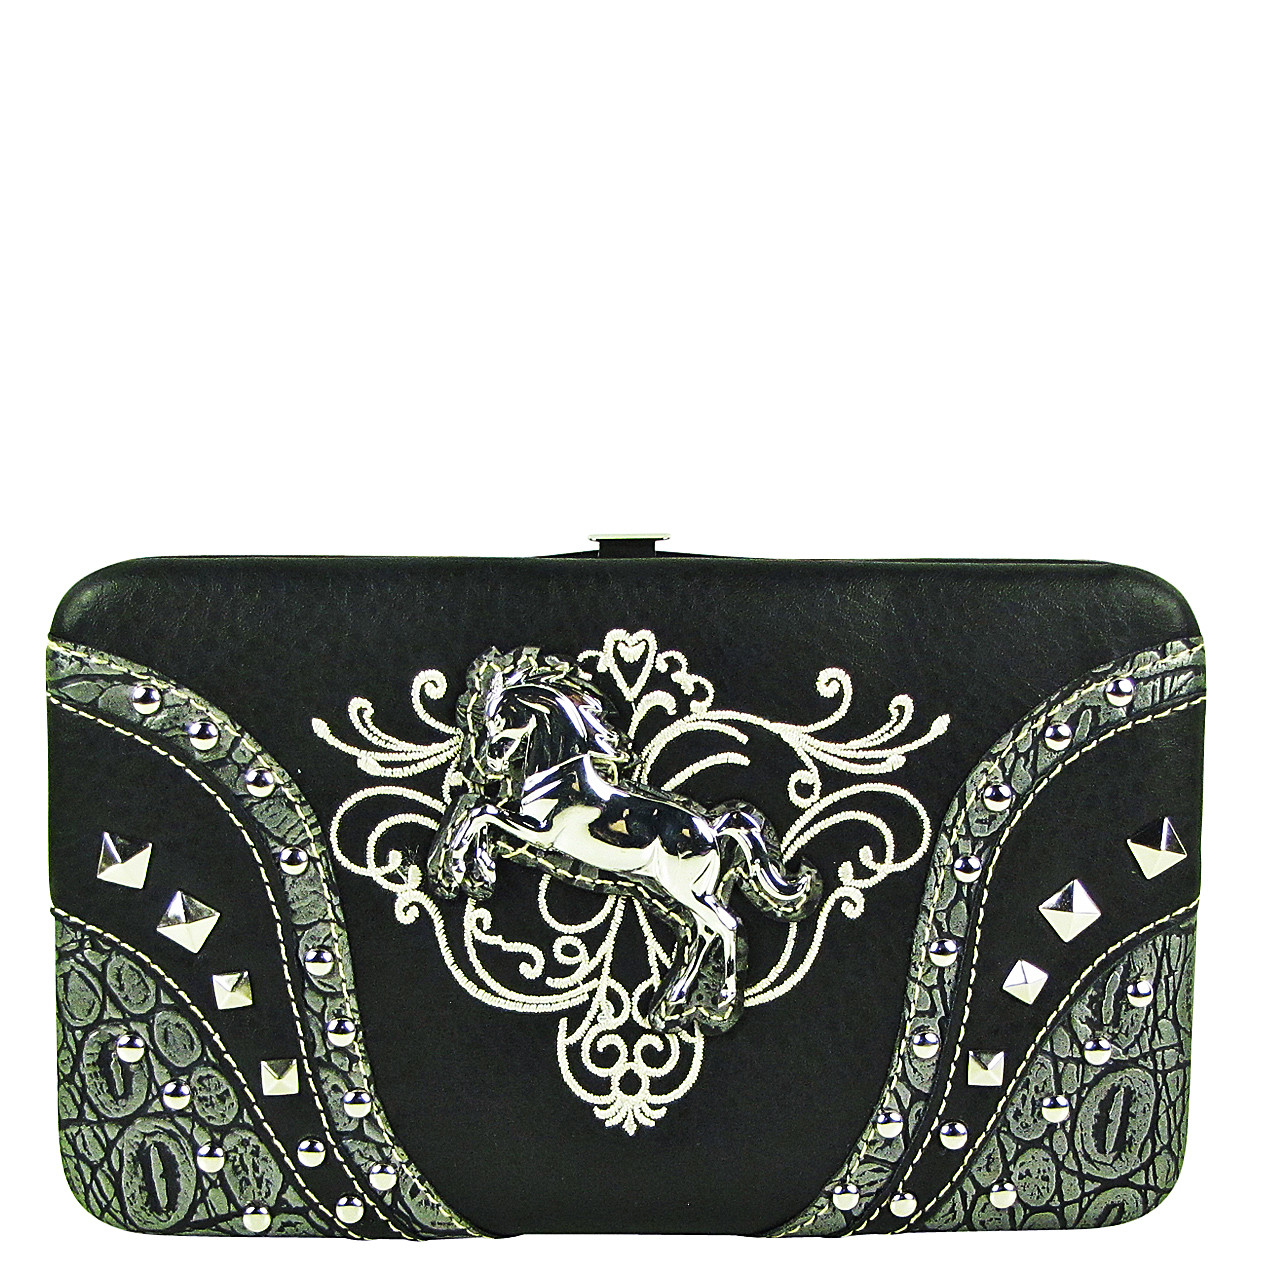 BLACK STITCHED TOOLED STUDDED HORSE LOOK FLAT THICK WALLET FW2-12126BLK